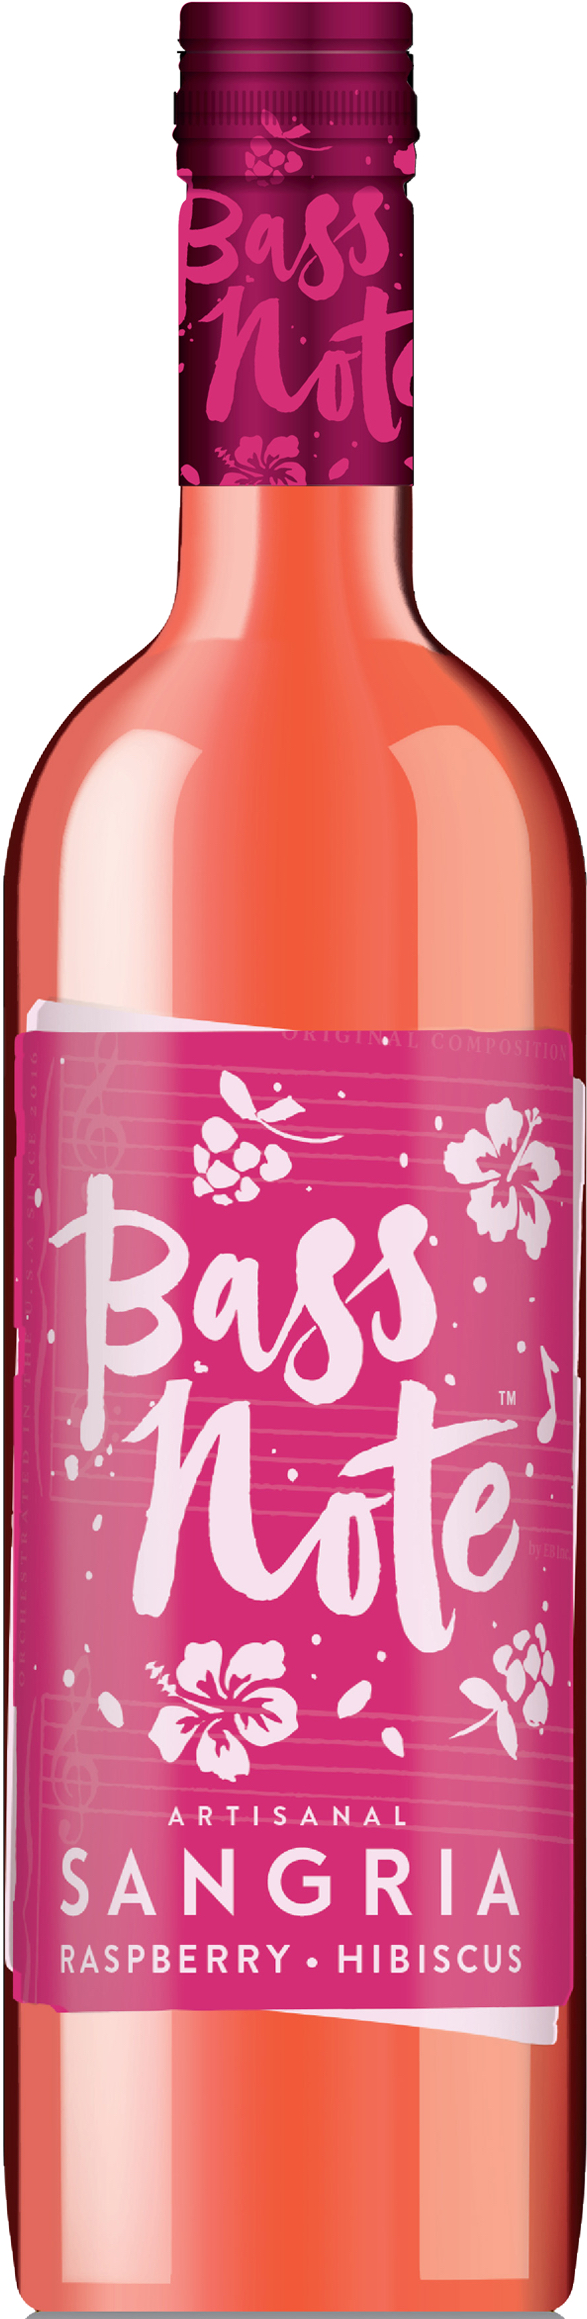 Bass Note Sangria - Raspberry Hibiscus 750ml